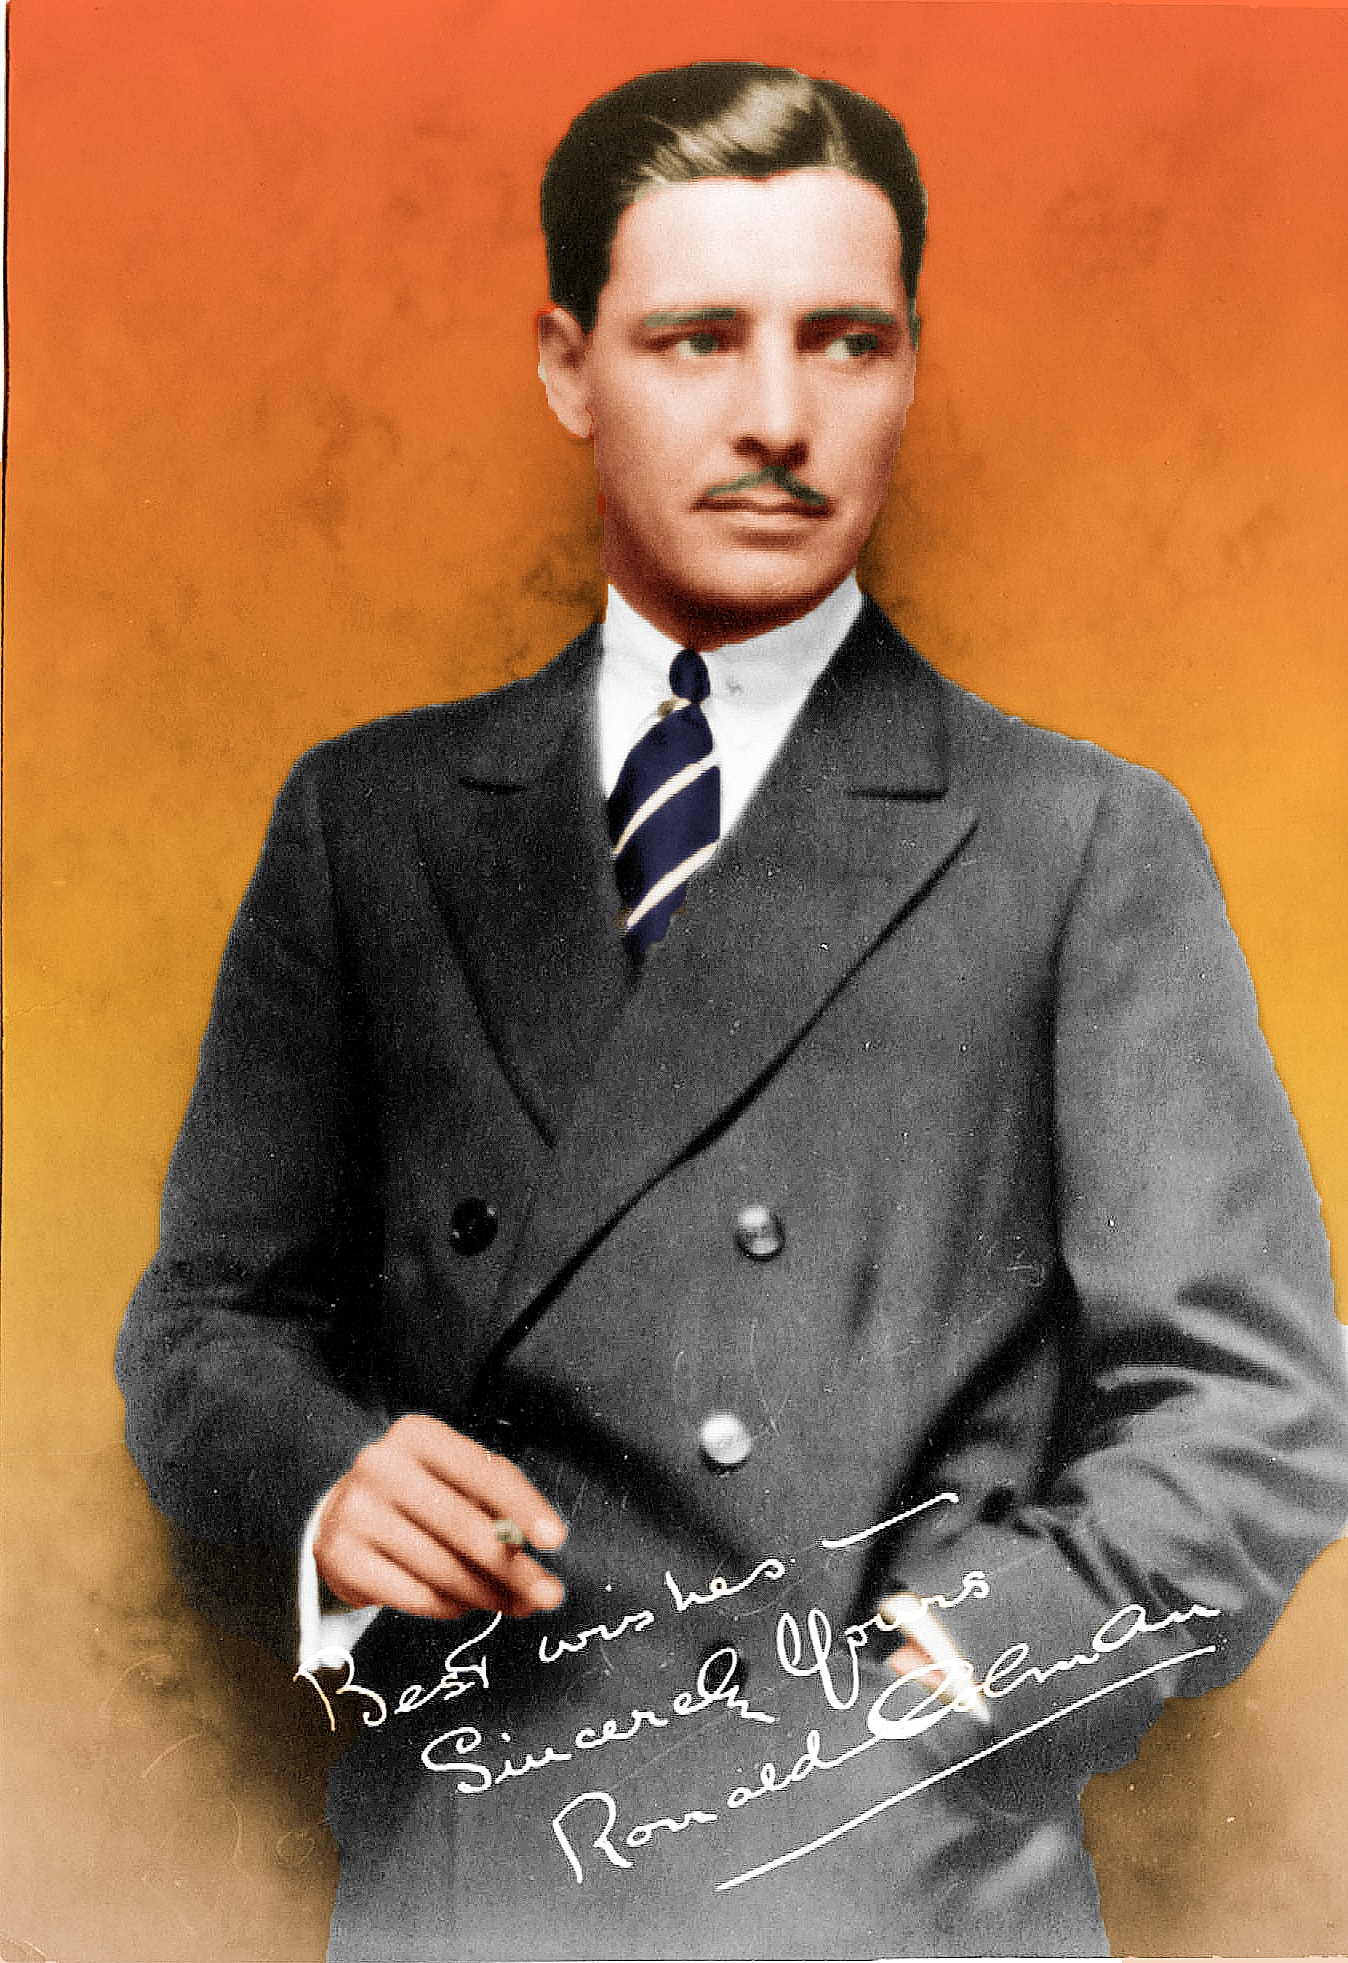 Ronald Colman HQ wallpapers